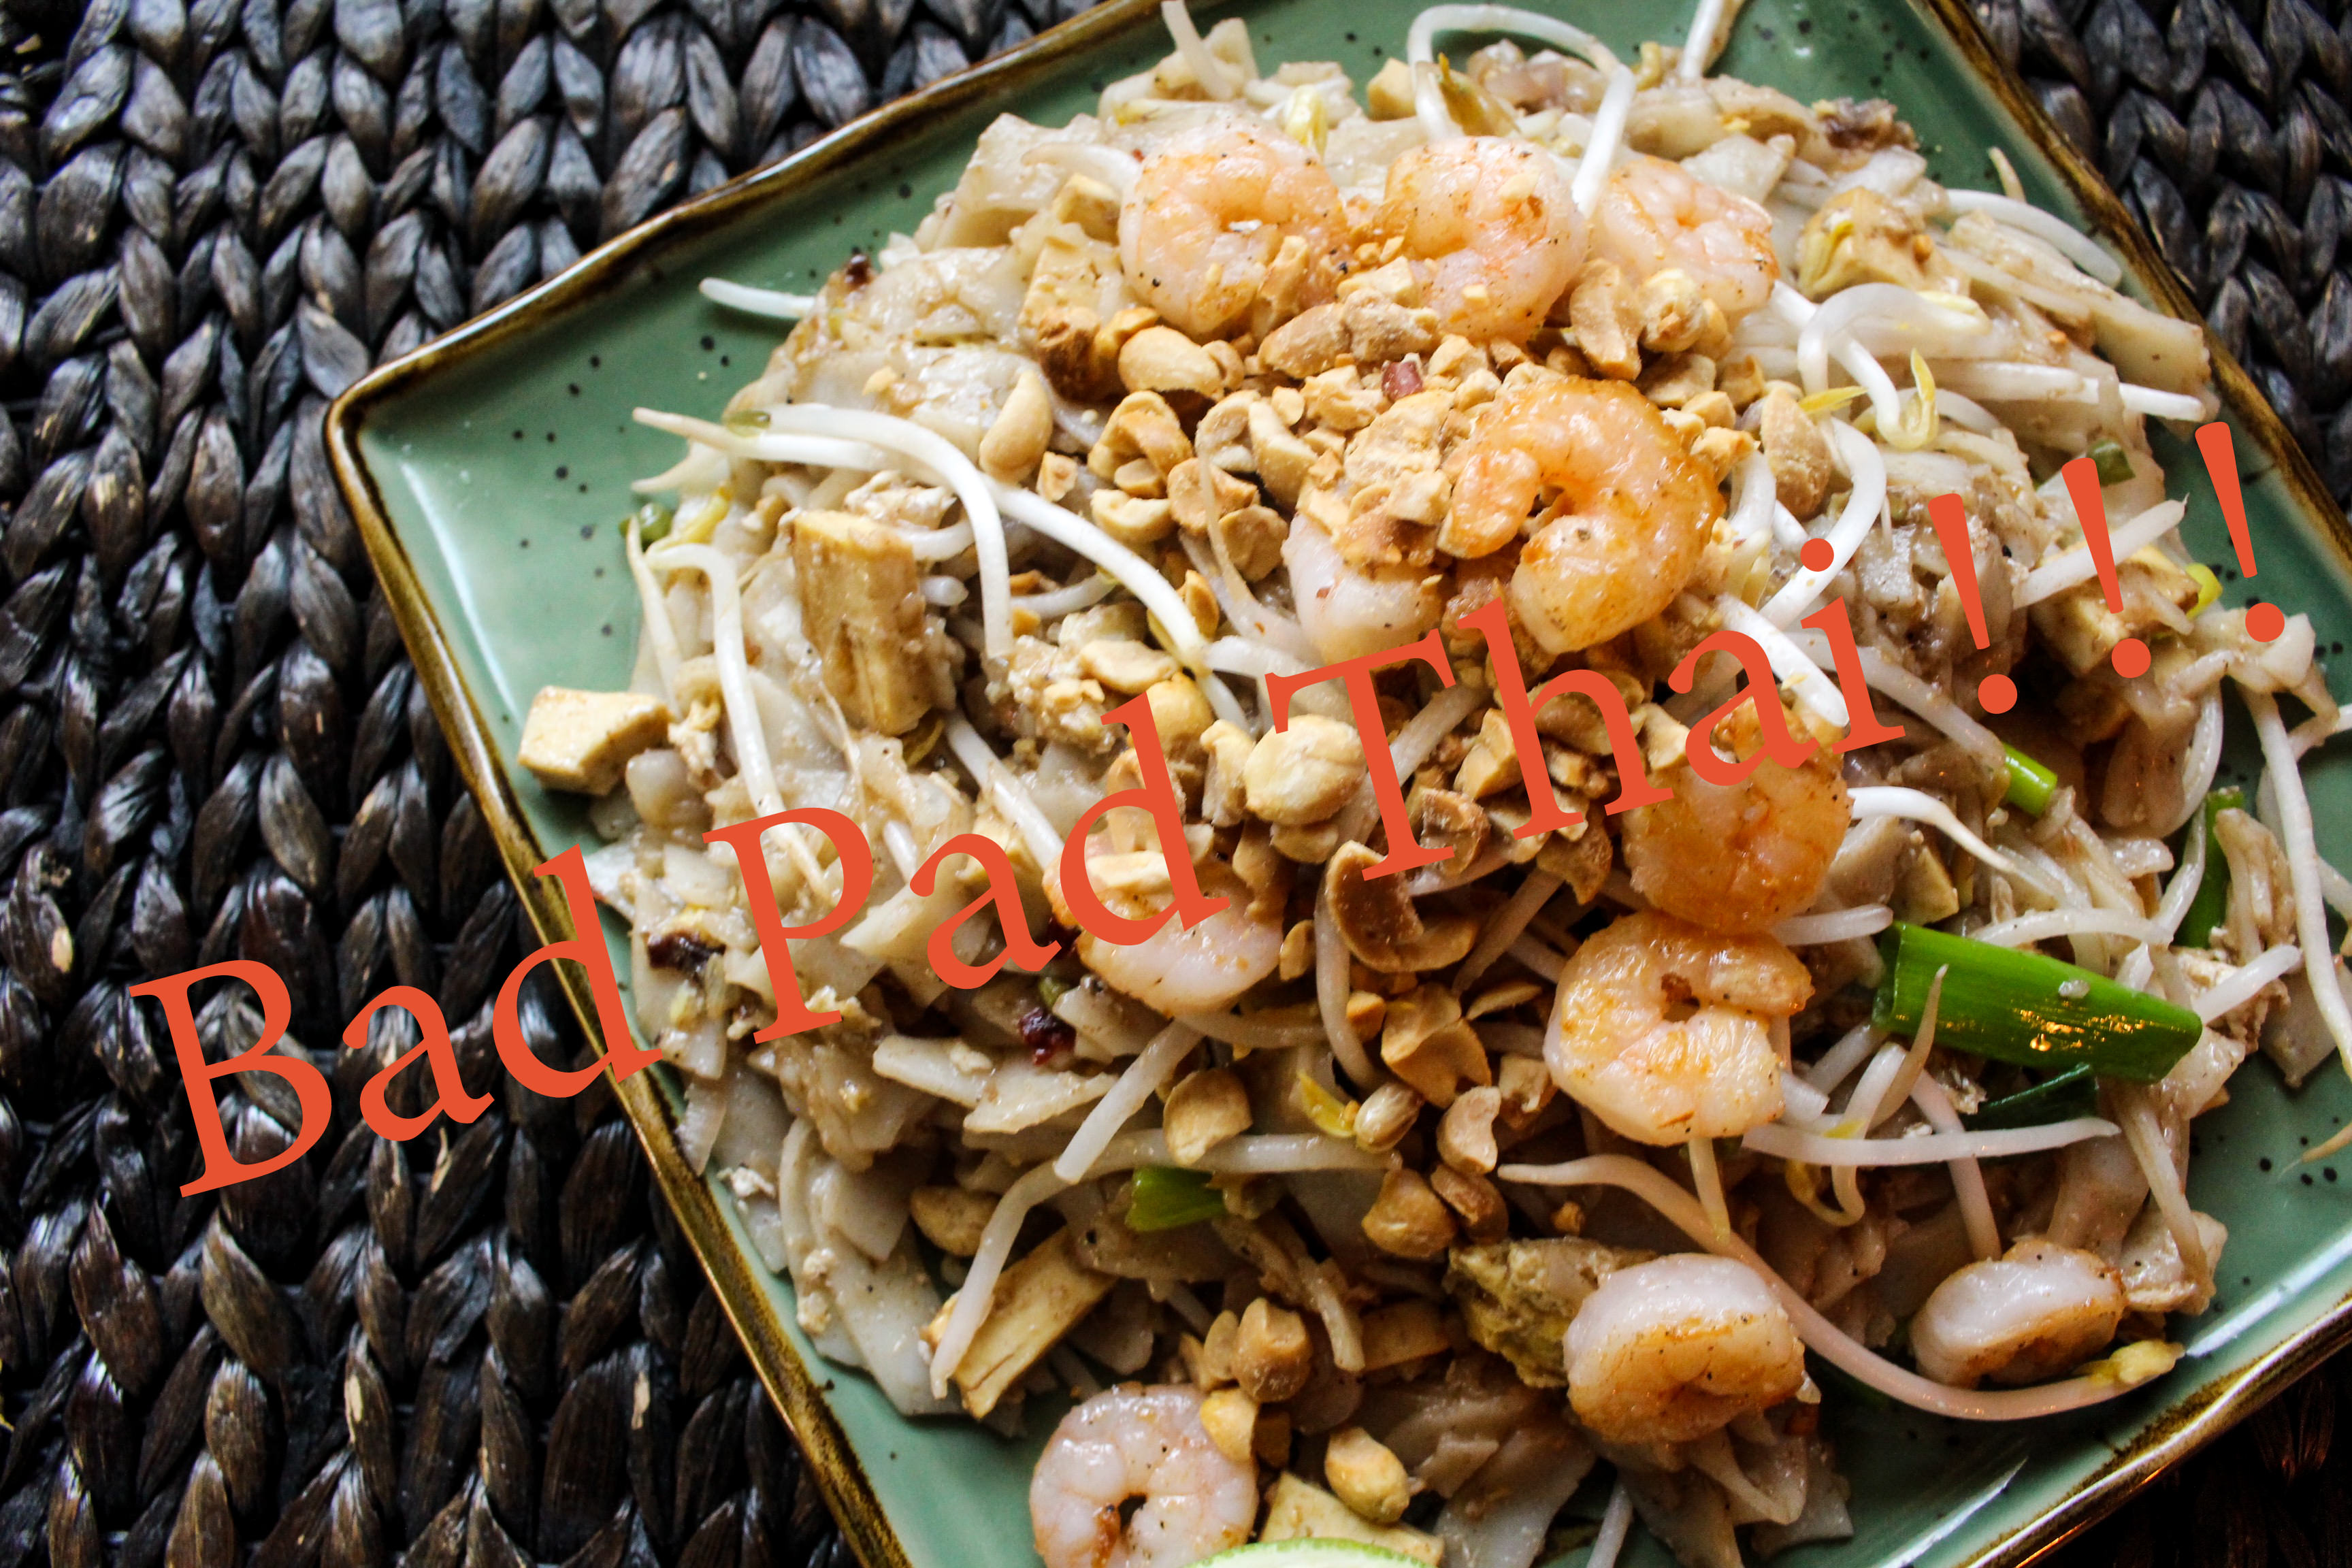 Bad Pad Thai!!!